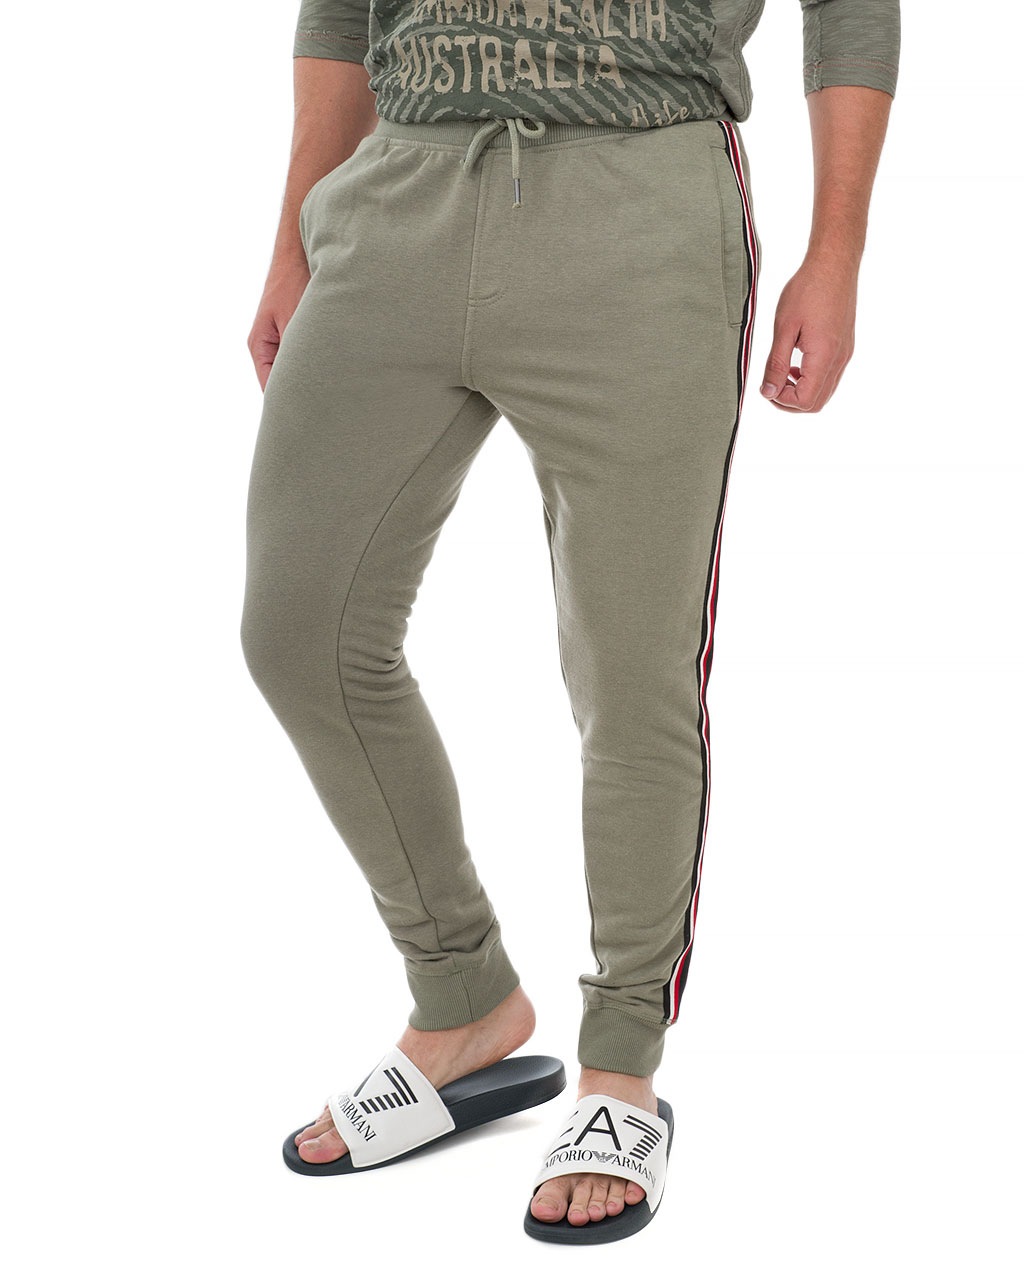 Men's trousers 20708030-77193/91 (6)